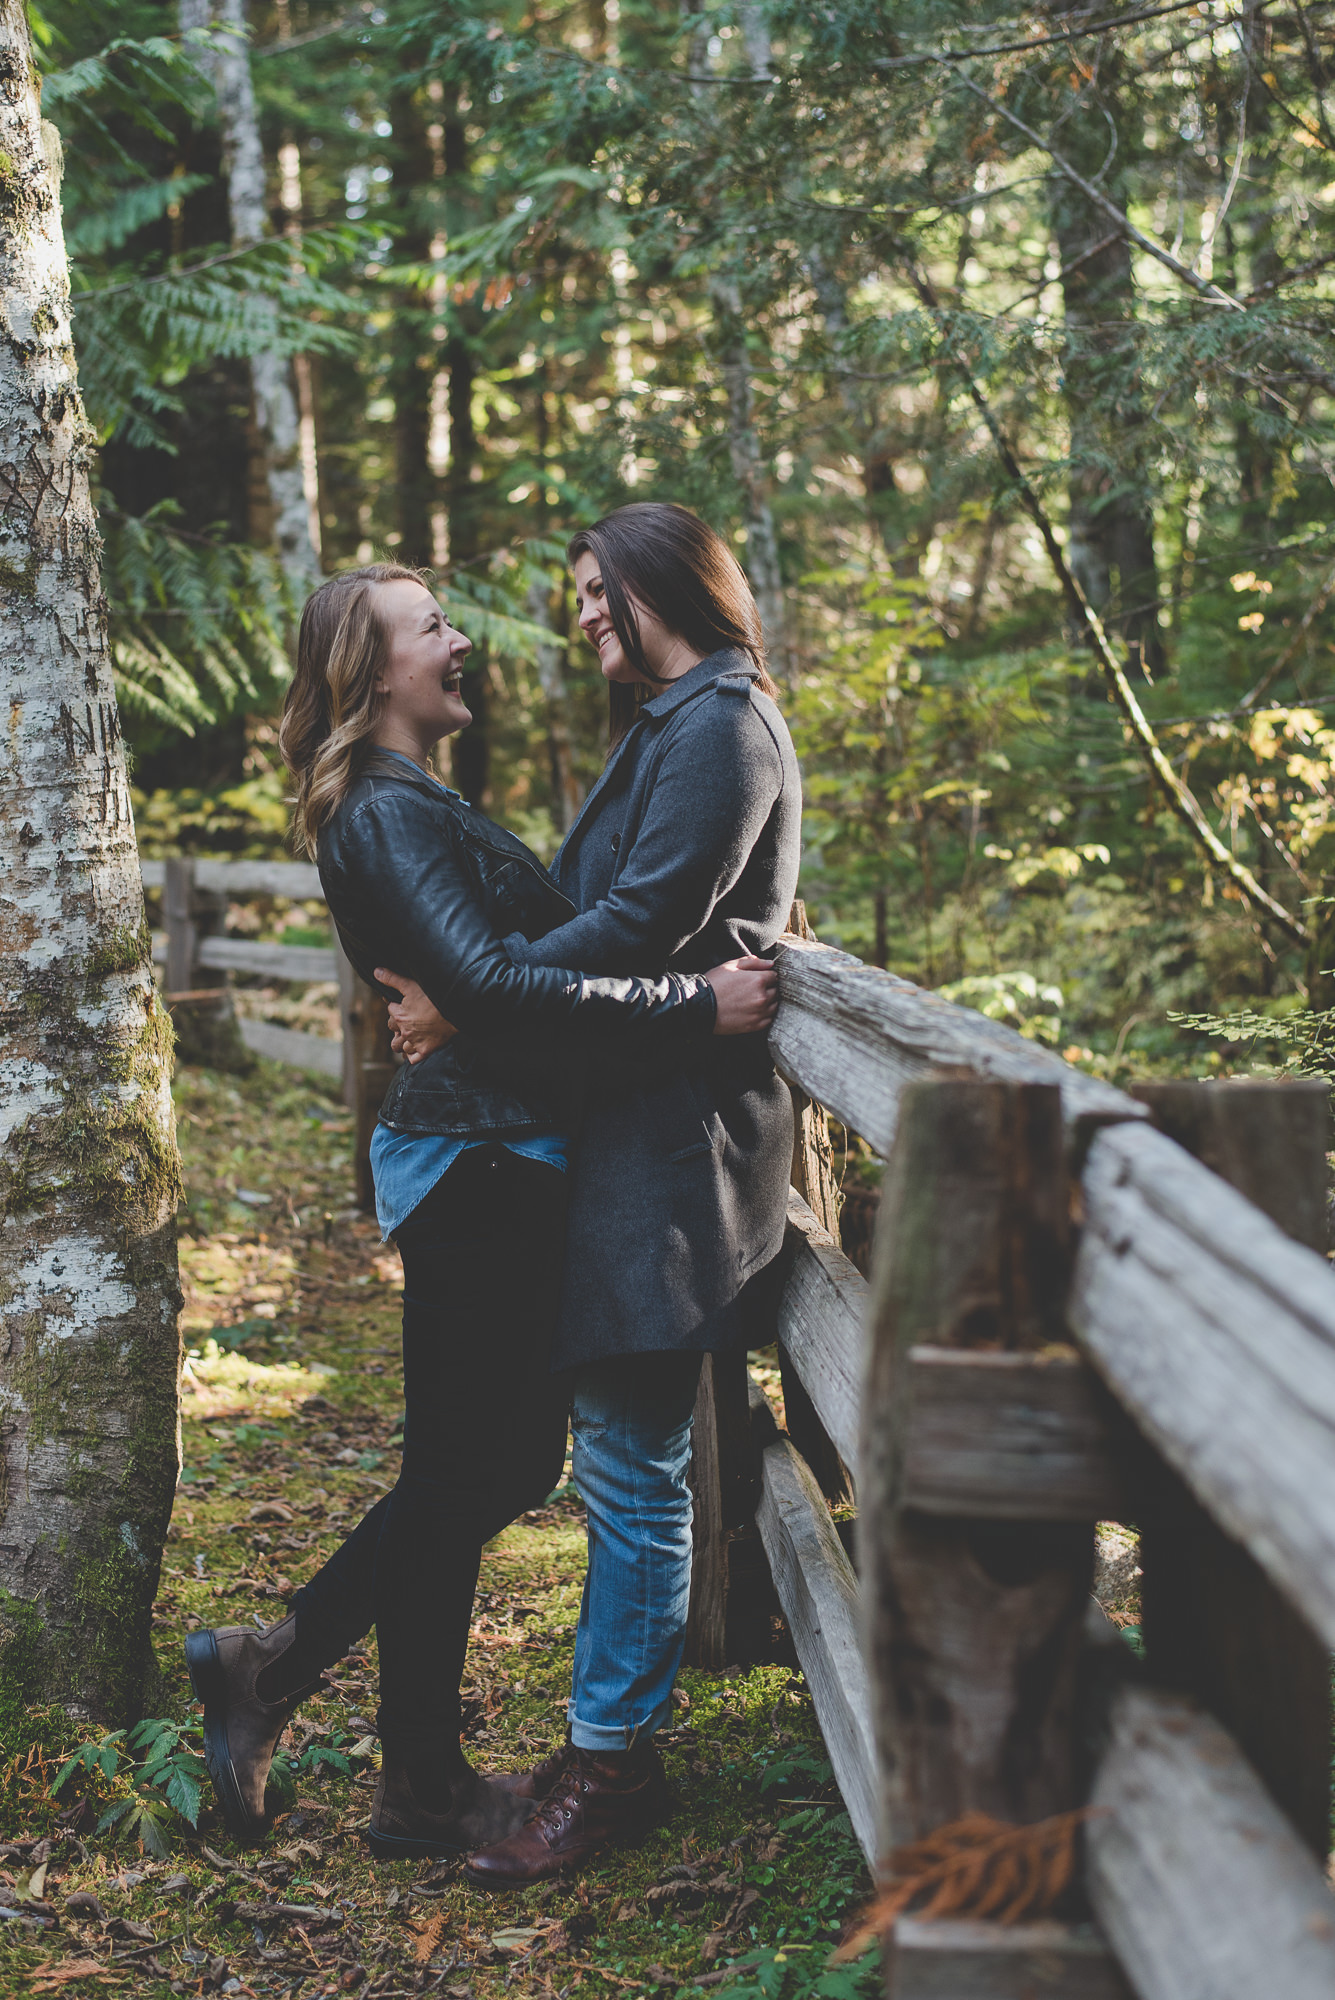 two girlfriends leaning against wooden fence and laughing